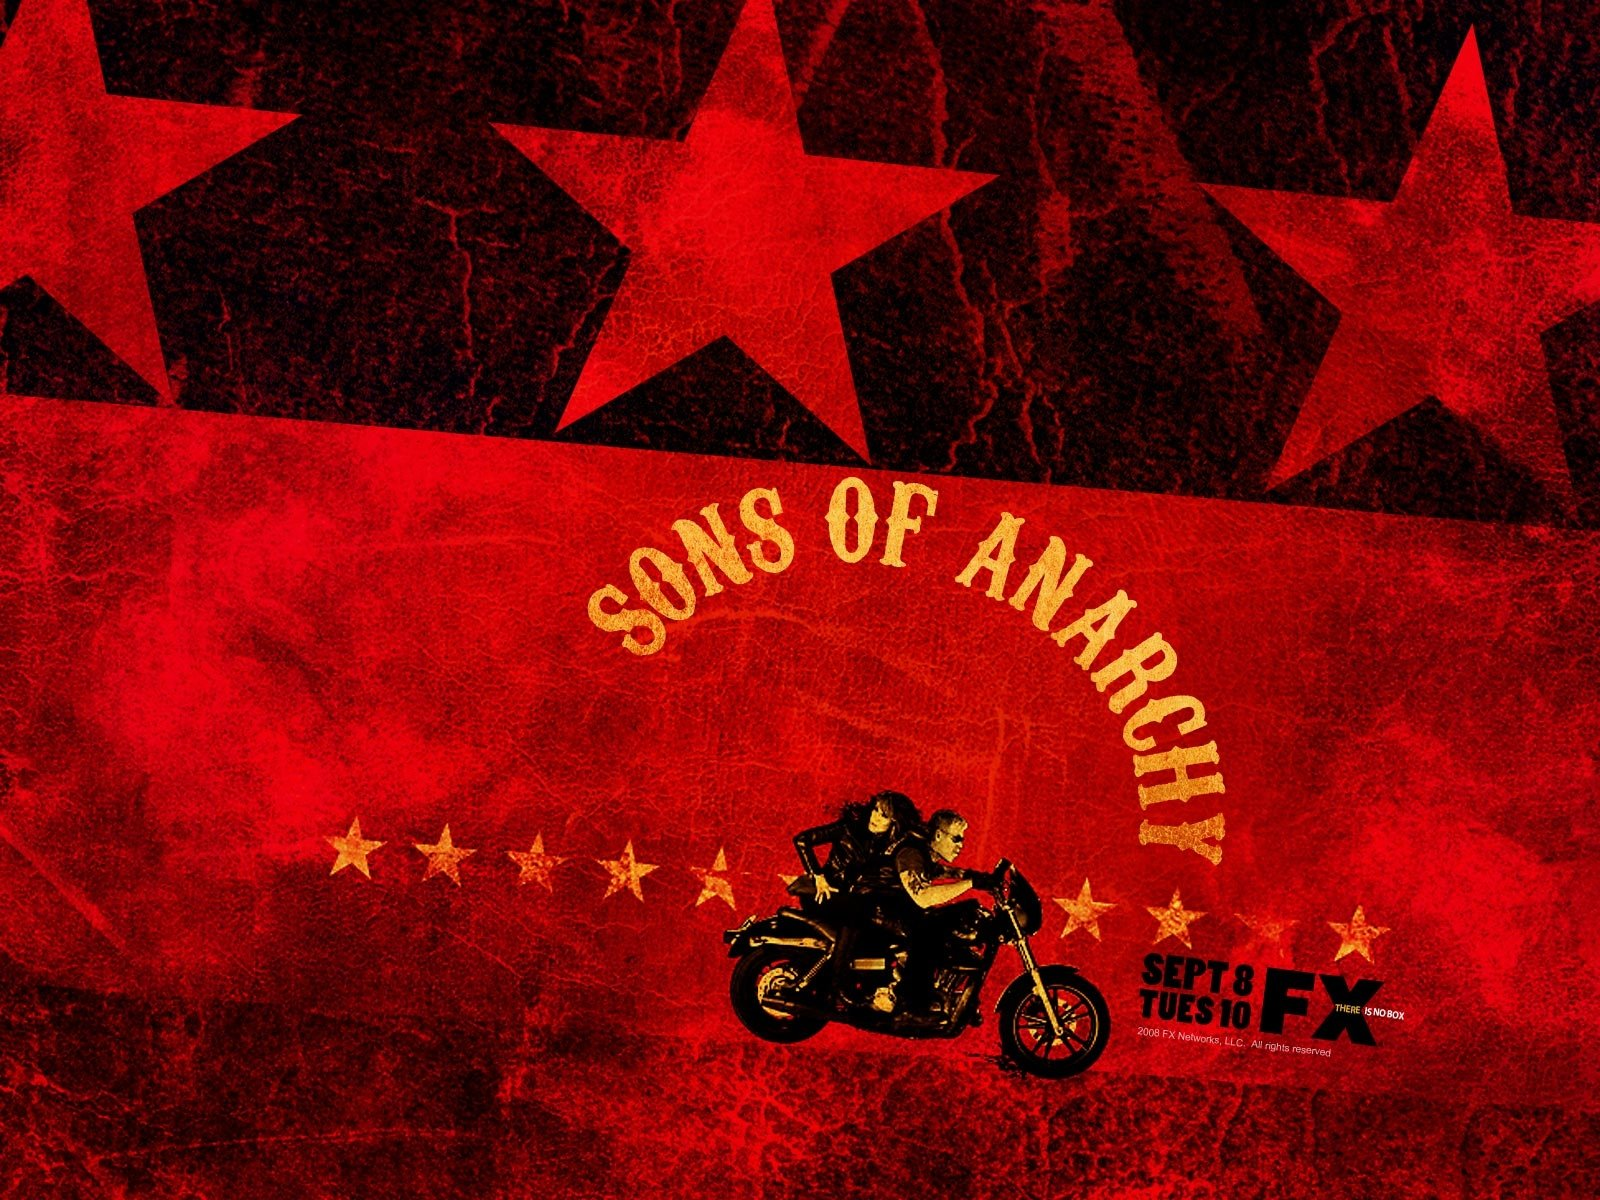 Sons of anarchy wallpaper and background image 1600x1200 - Soa wallpaper iphone ...